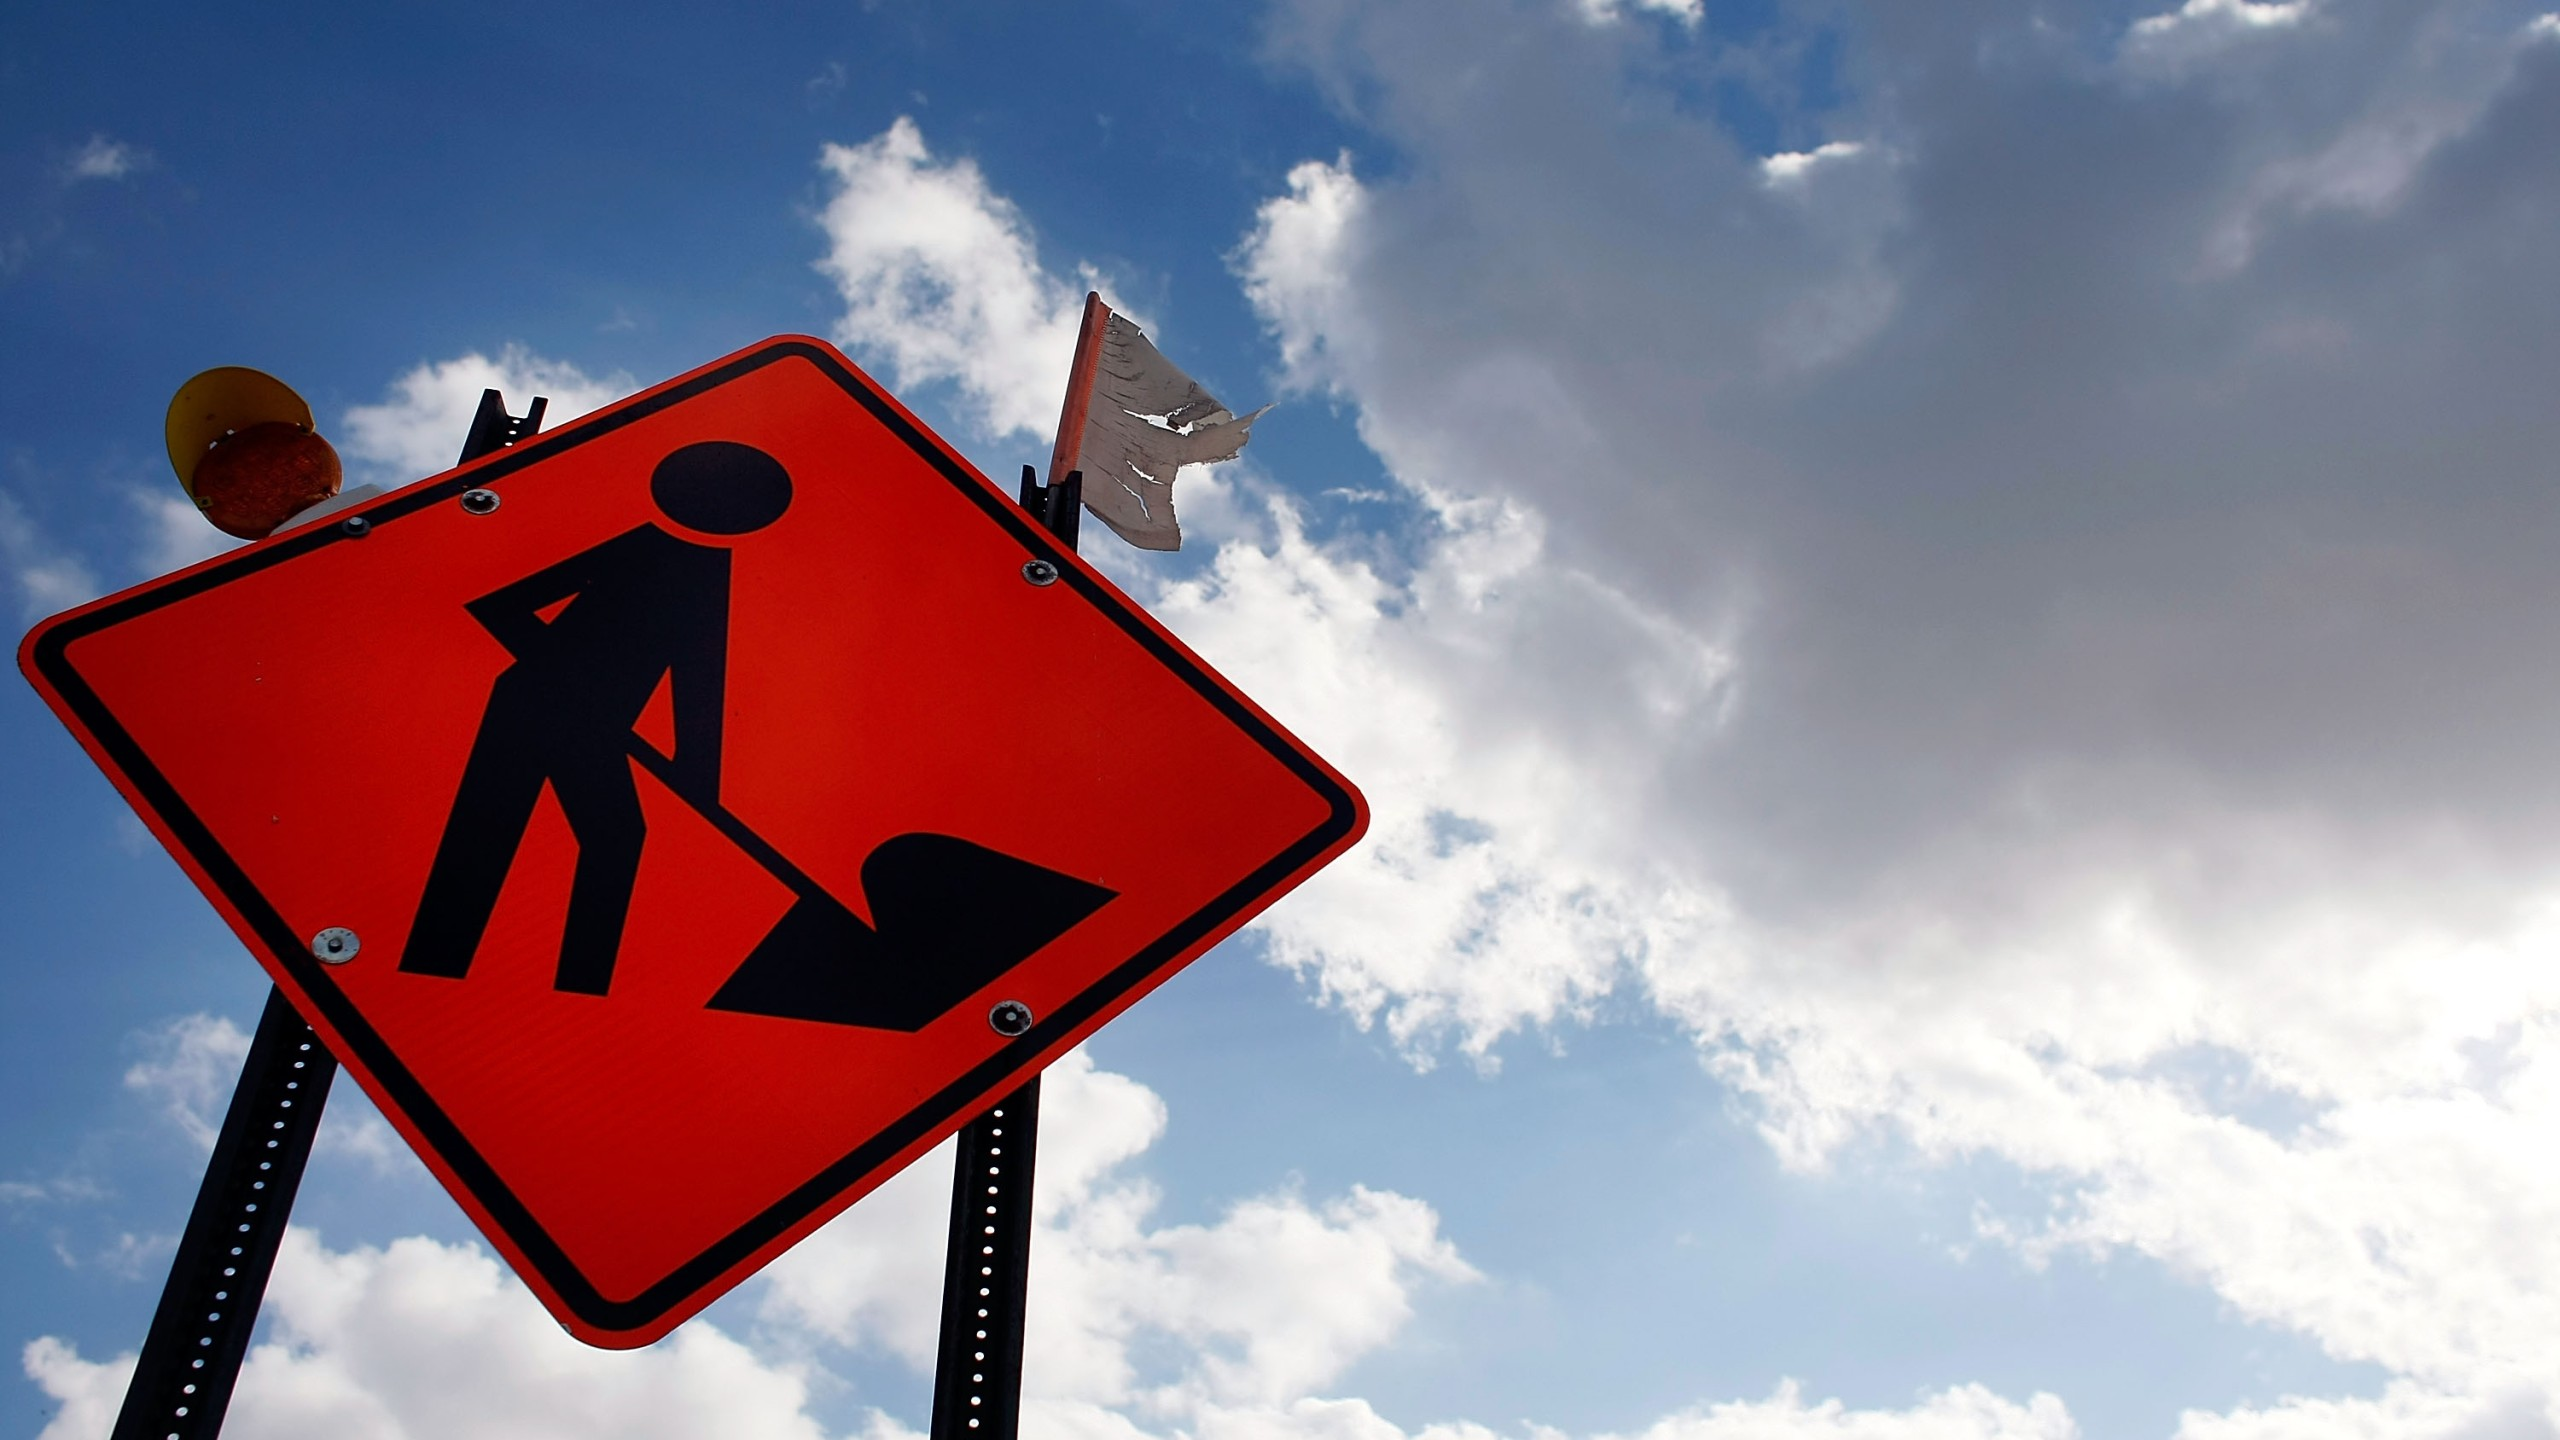 A constuction work sign is seen in this file photo. (Credit: Joe Raedle/Getty Images)